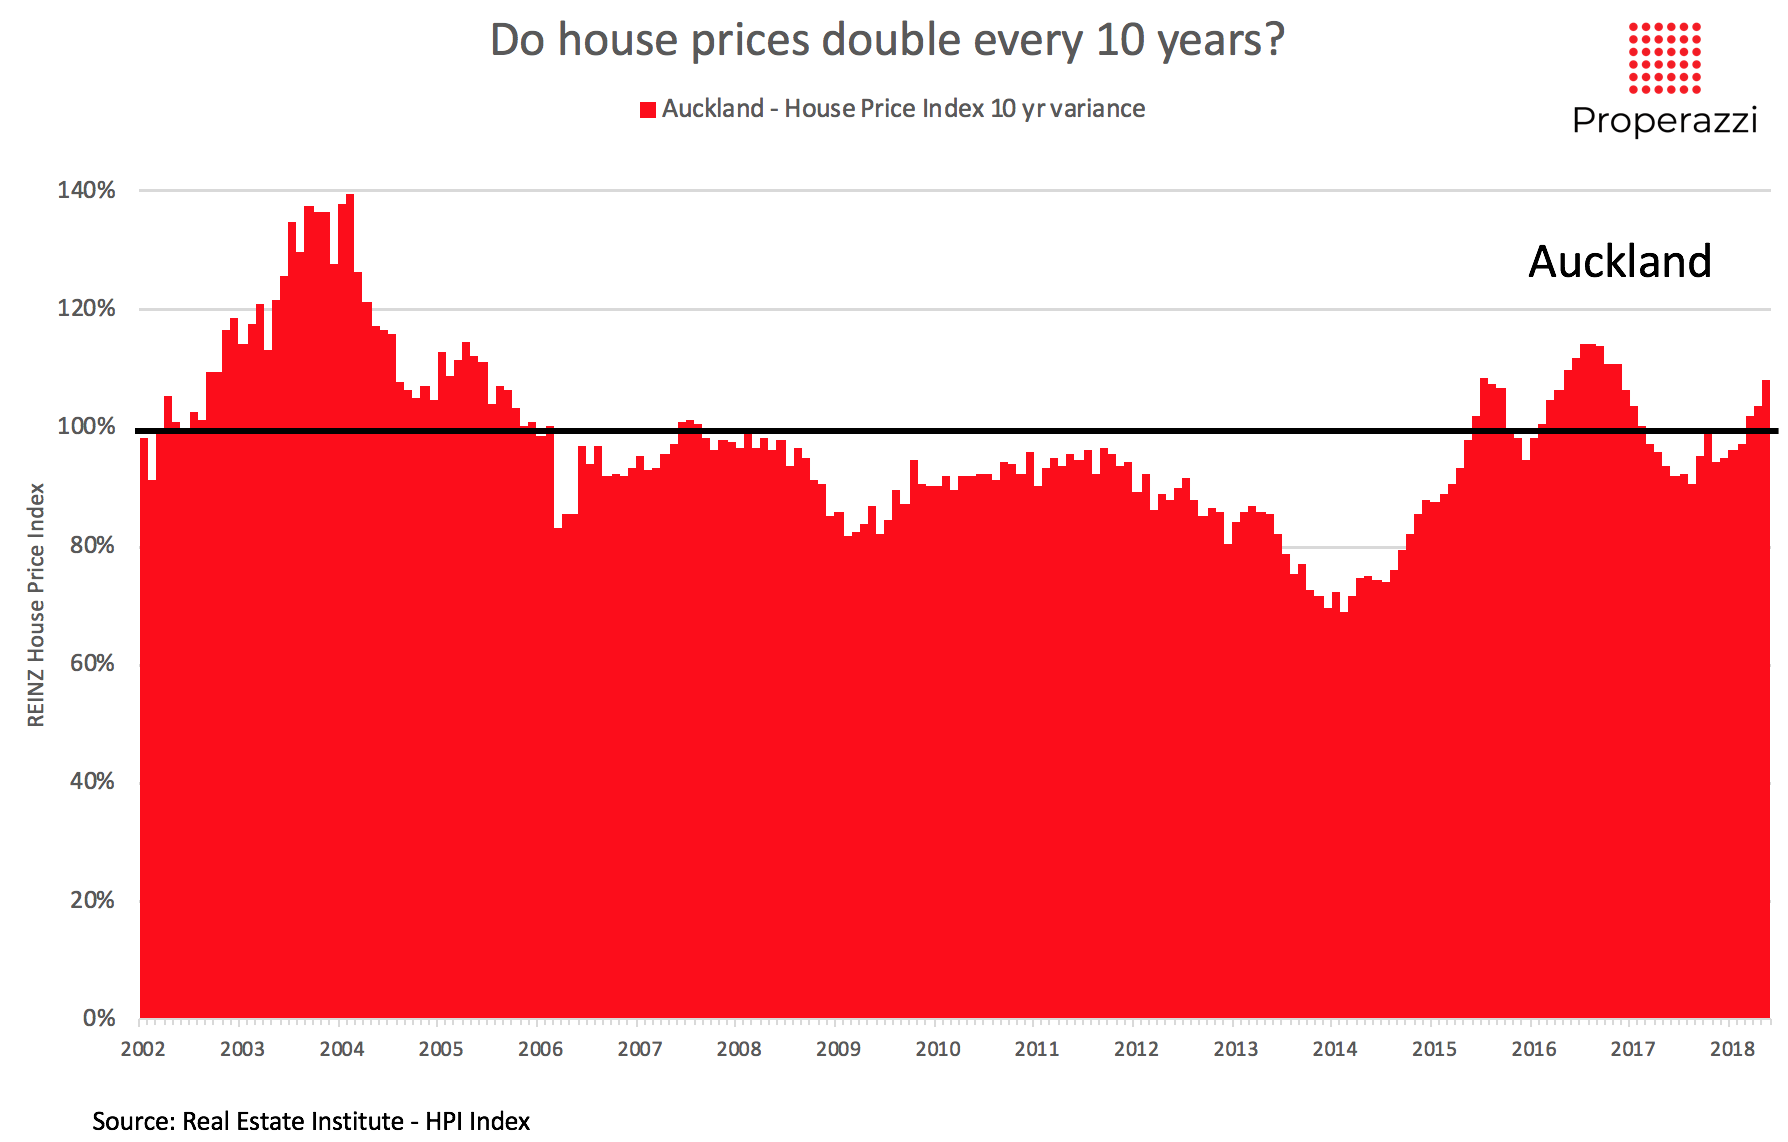 Do house prices double every 10 yrs - Auckland data.png